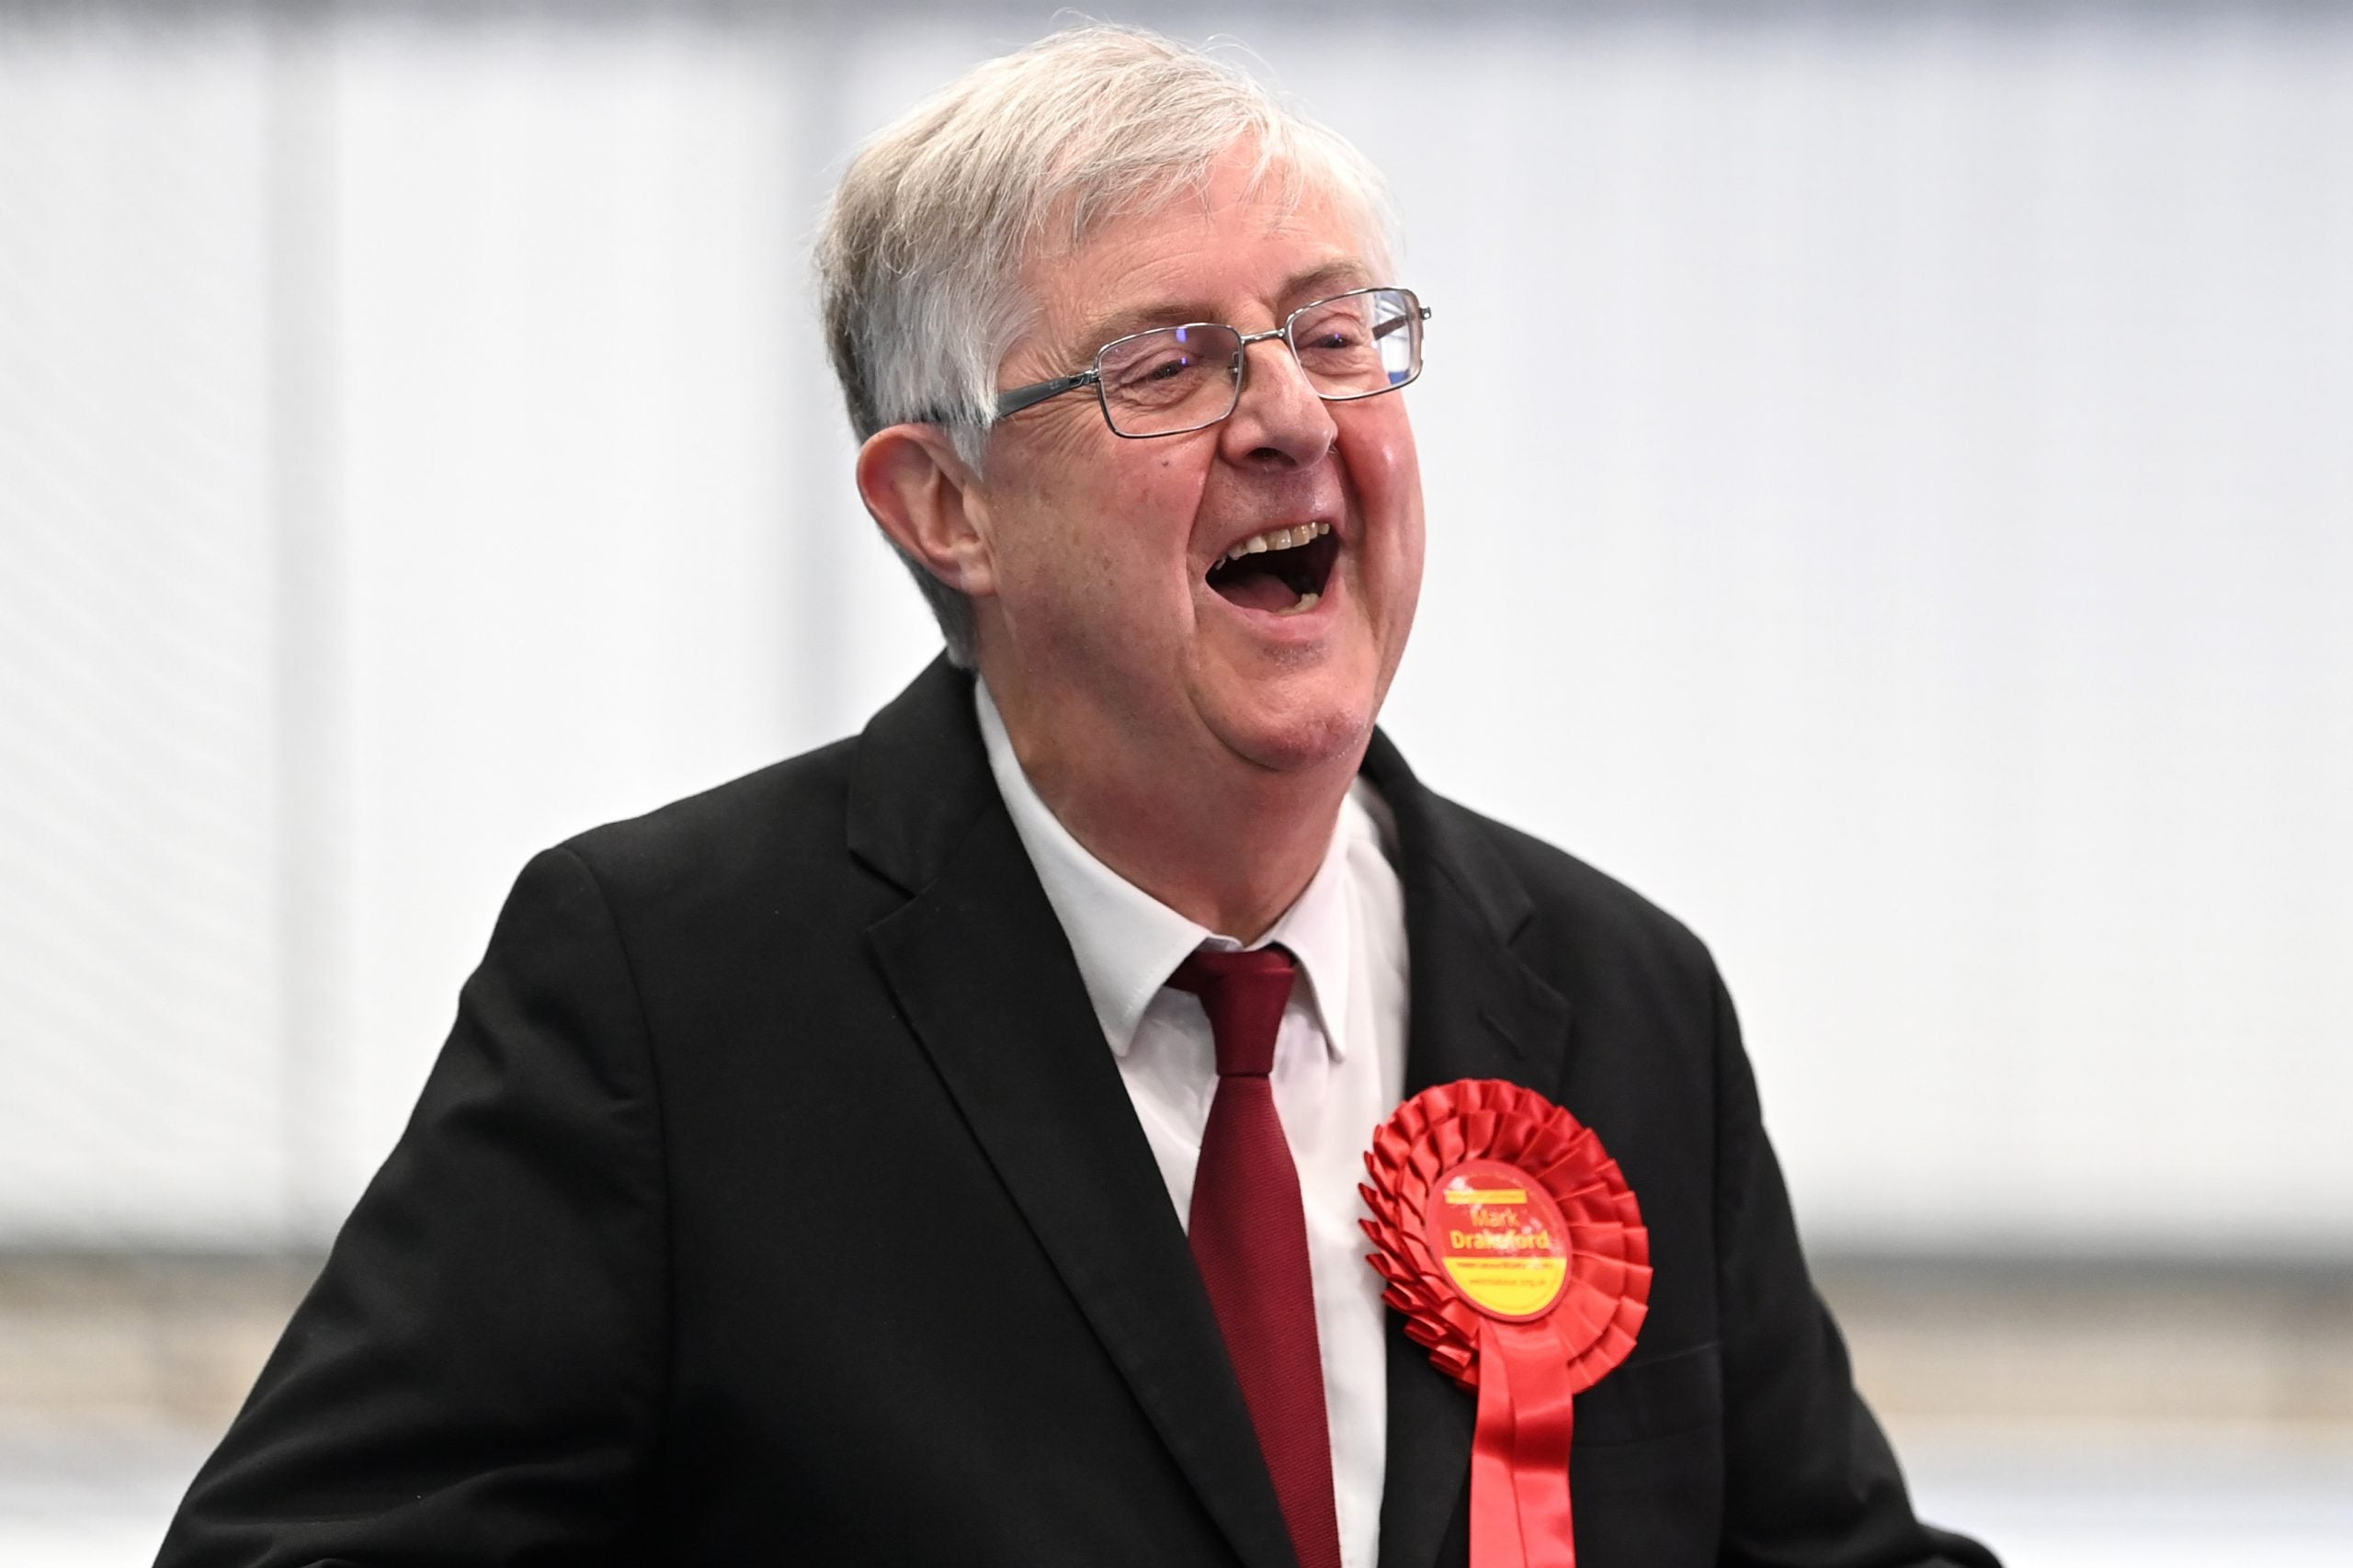 Why did Labour do better in Wales than in England? You might not like the answer